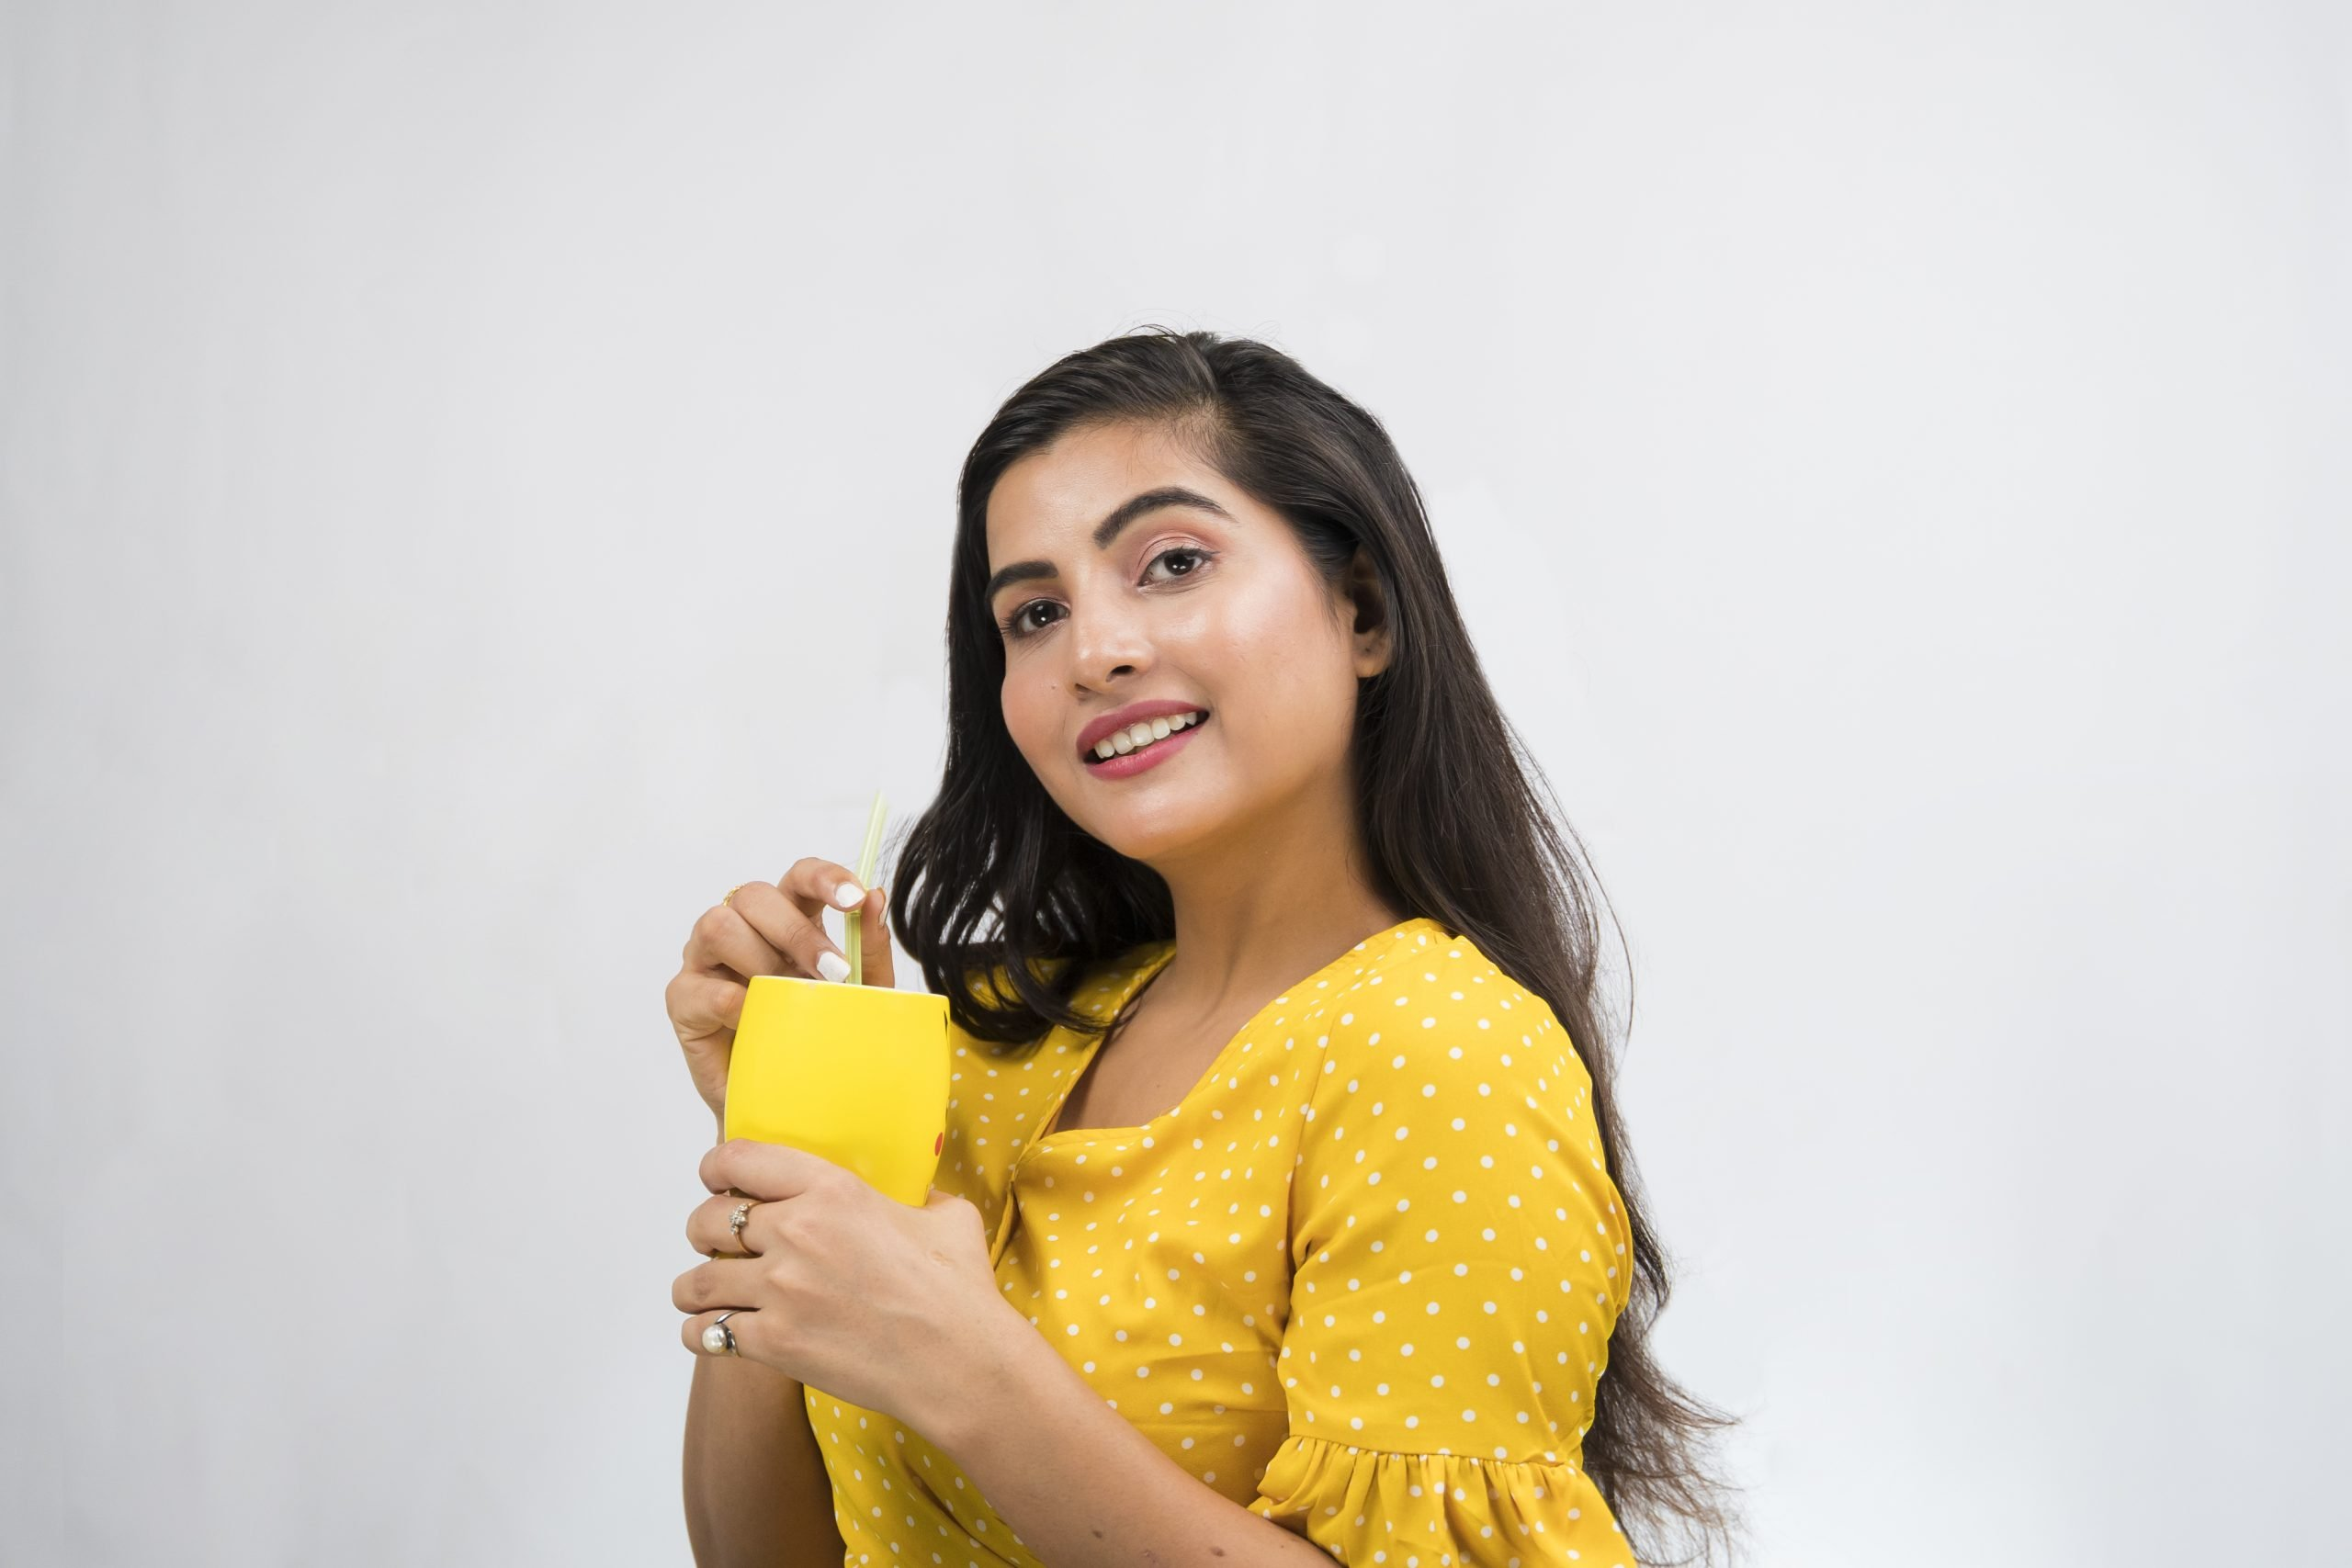 Indian girl holding a cup